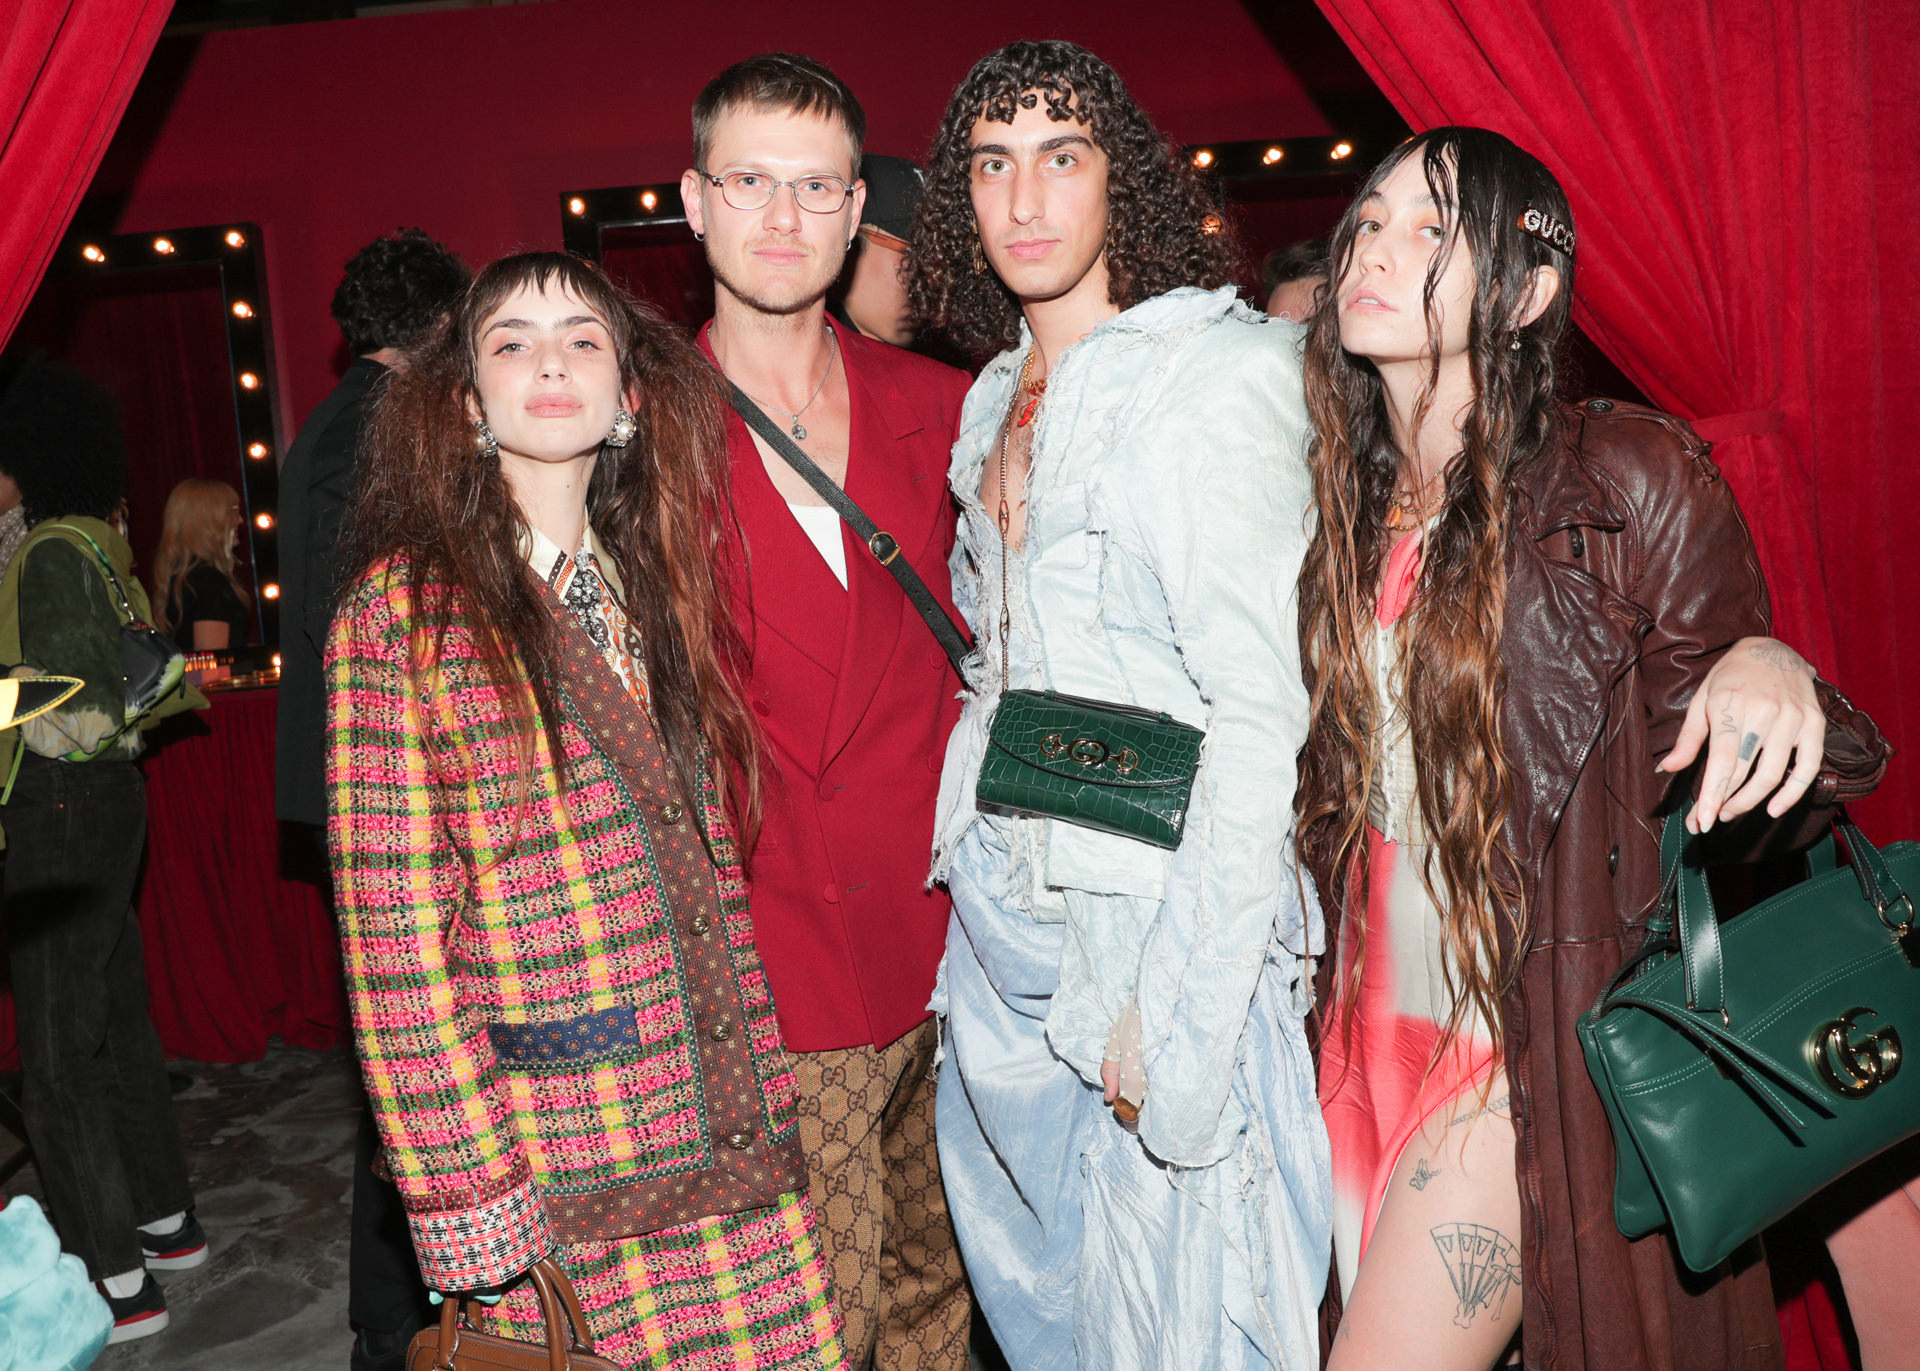 Zoe Bleu Arquette and friends at Gucci launch